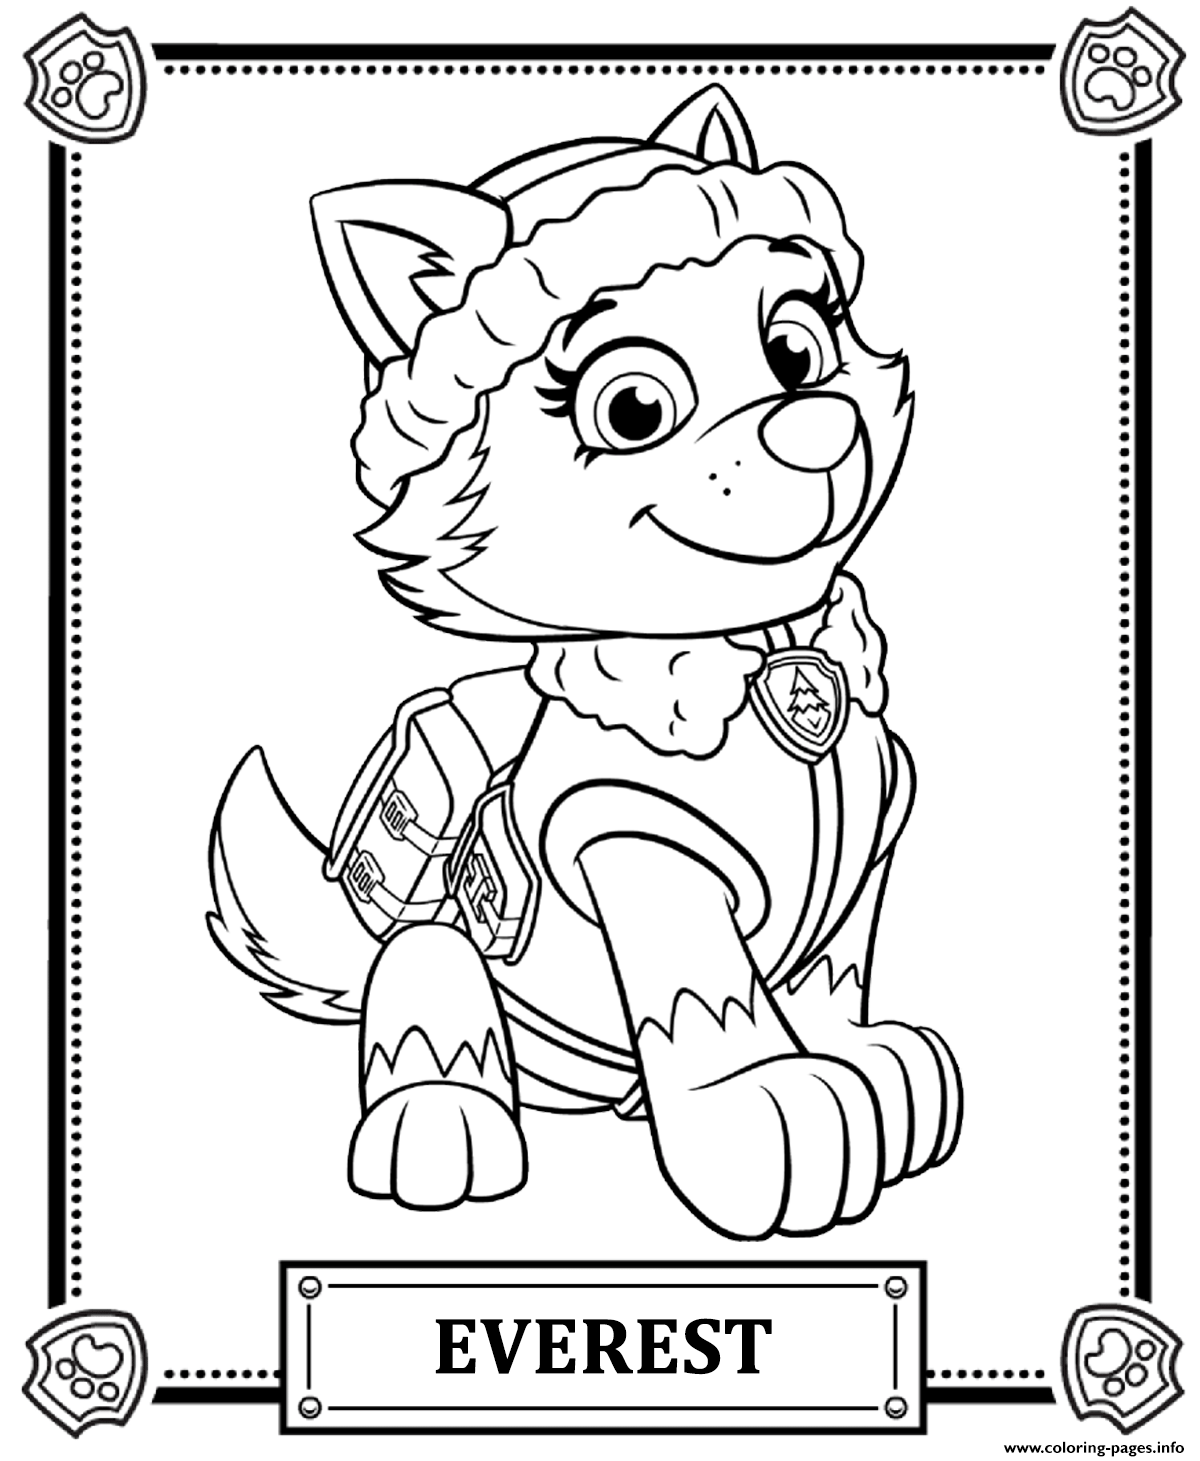 print paw patrol everest coloring pages paw patrol birthday